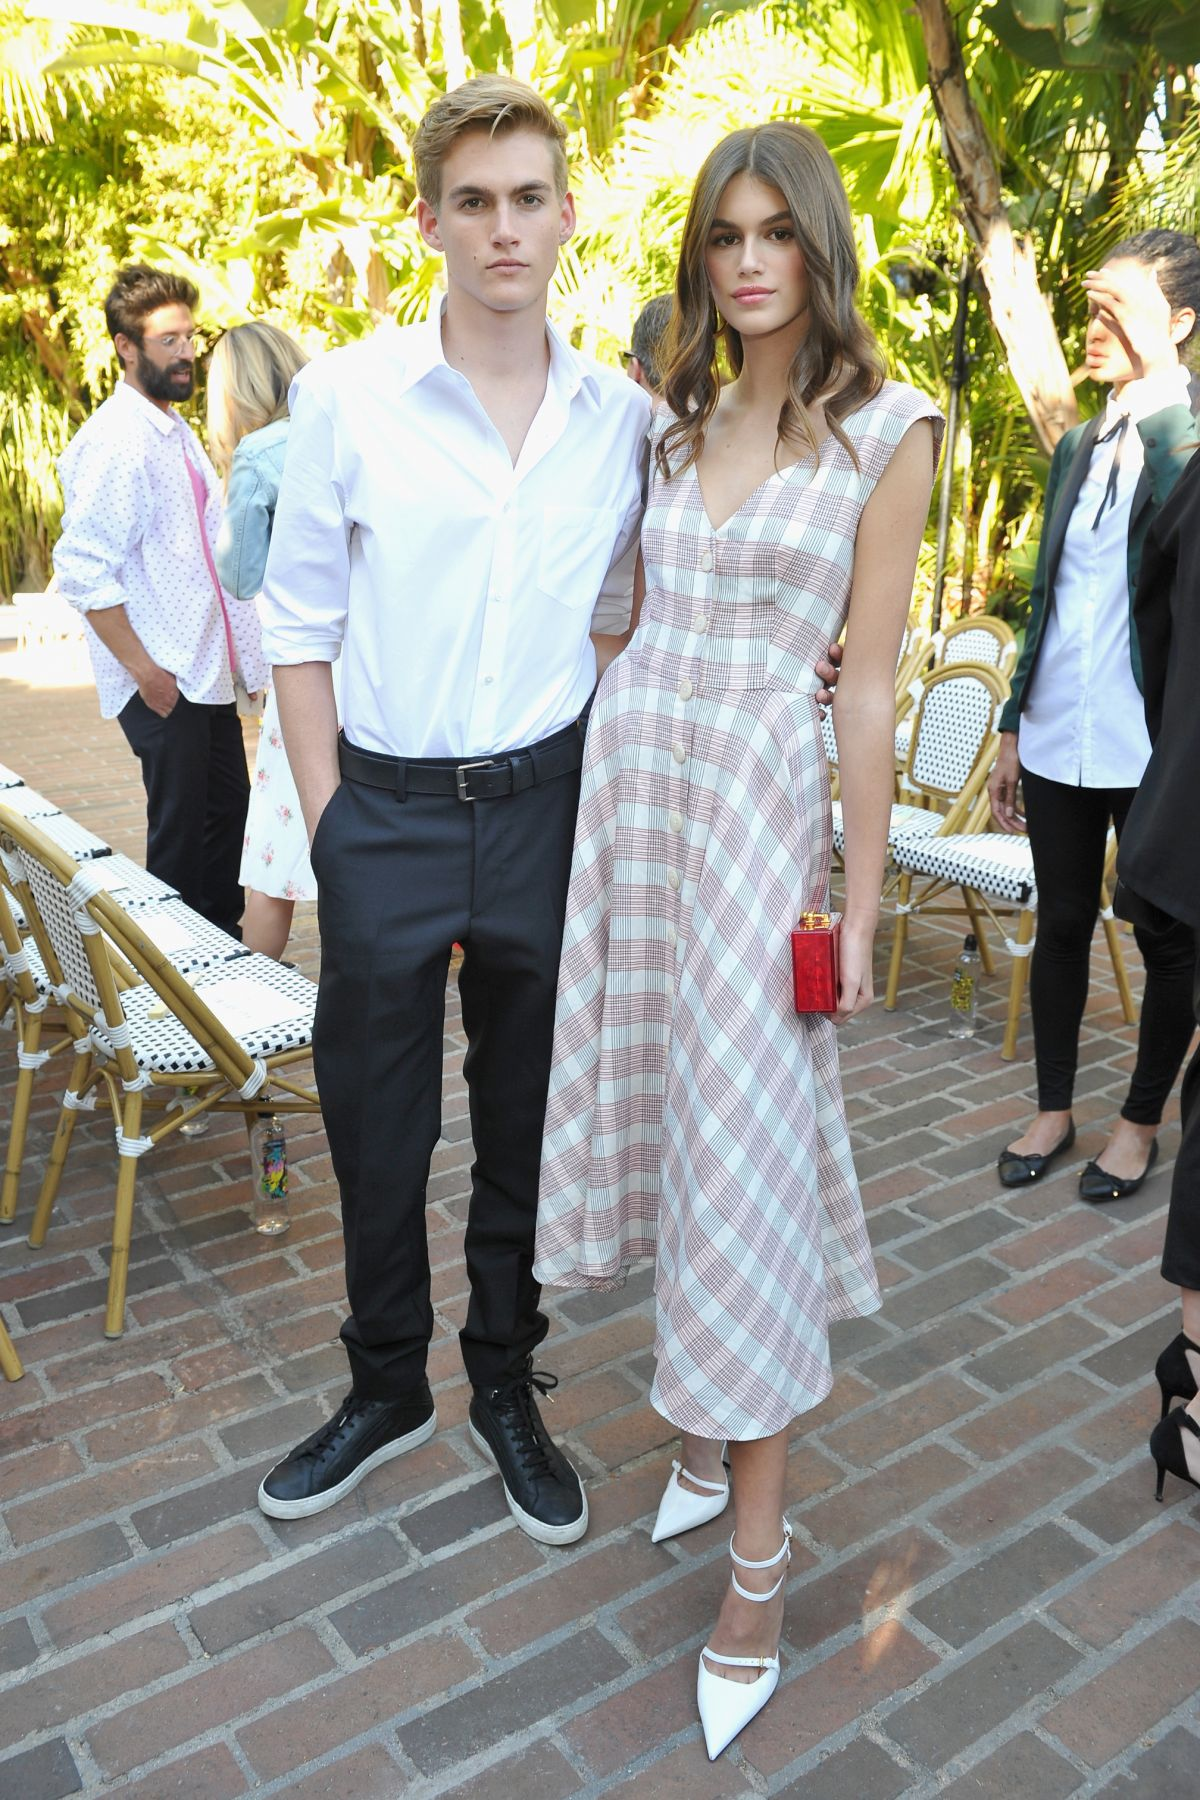 Kaia Gerber Attends CFDA/Vogue Fashion Fund Show and Tea at Chateau Marmont in LA